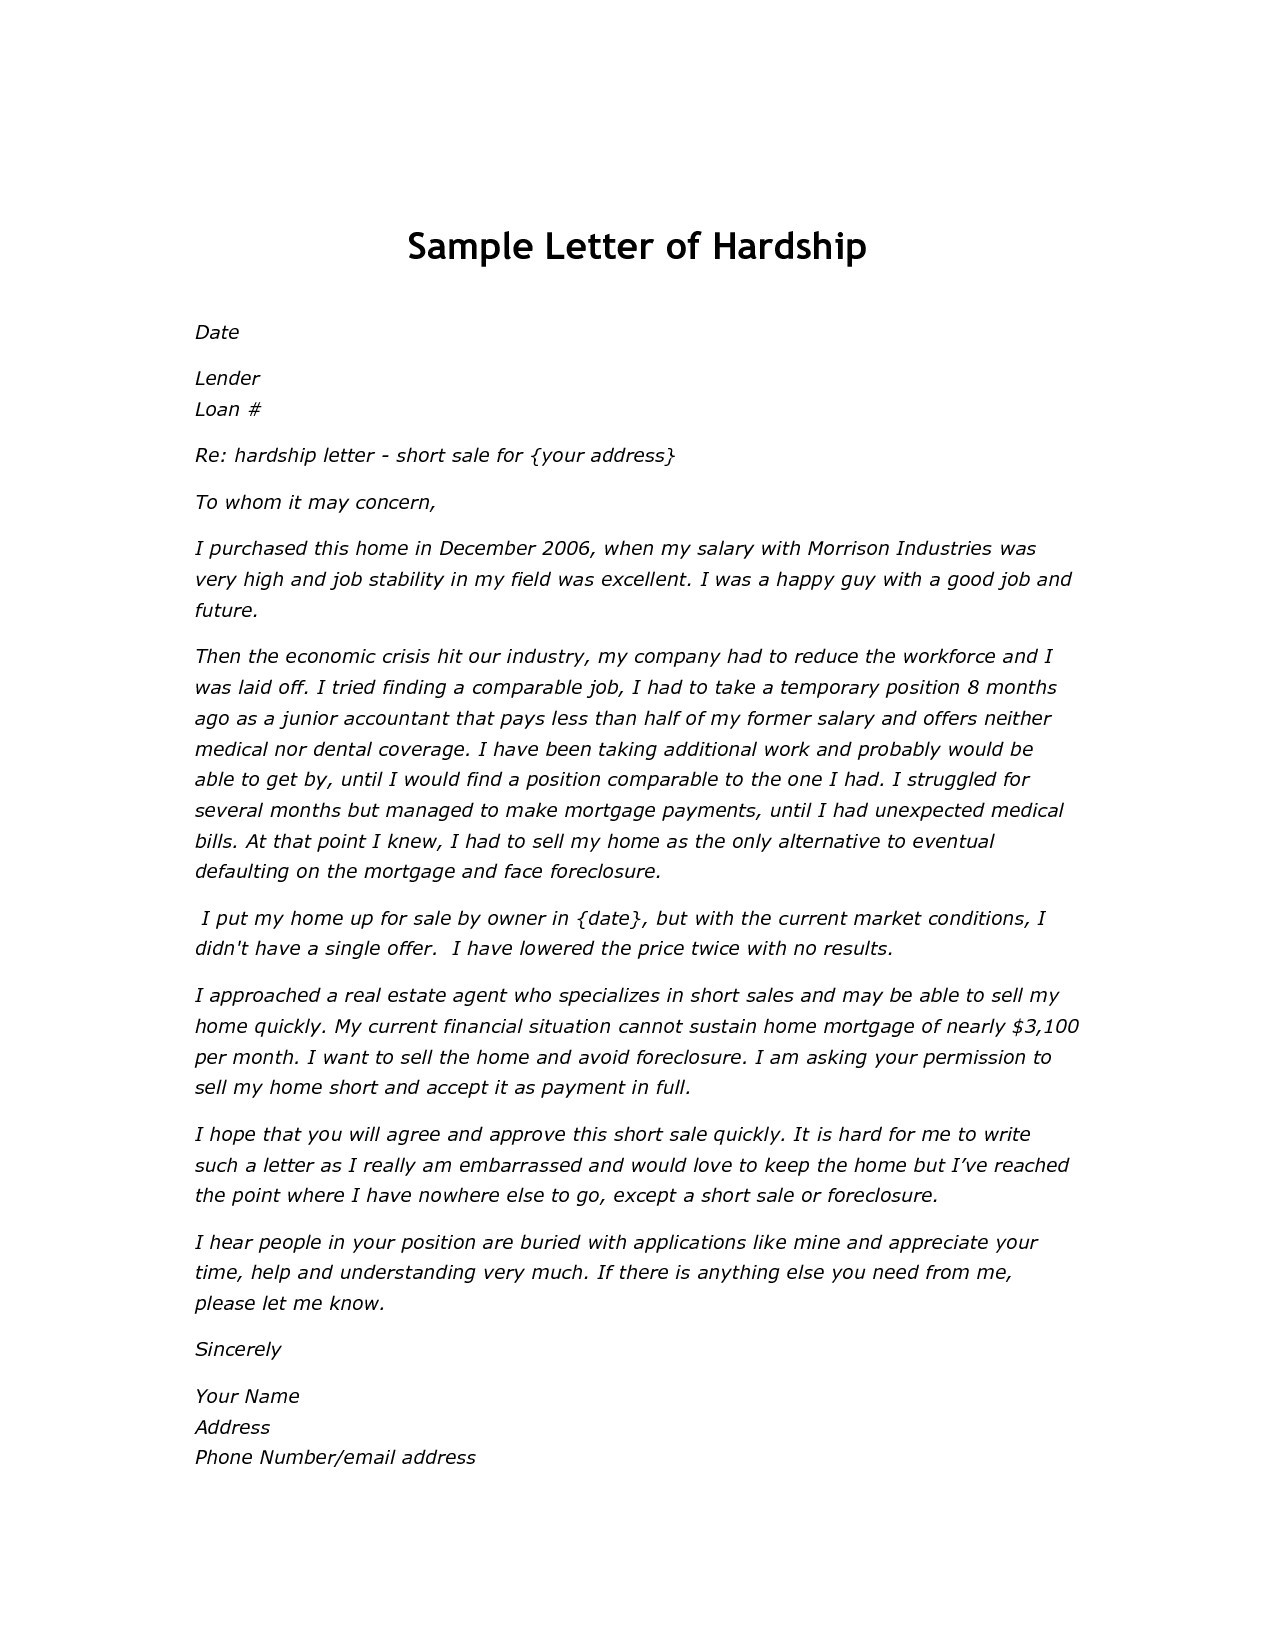 short sale hardship letter template example-short sale hardship letter template 6-m